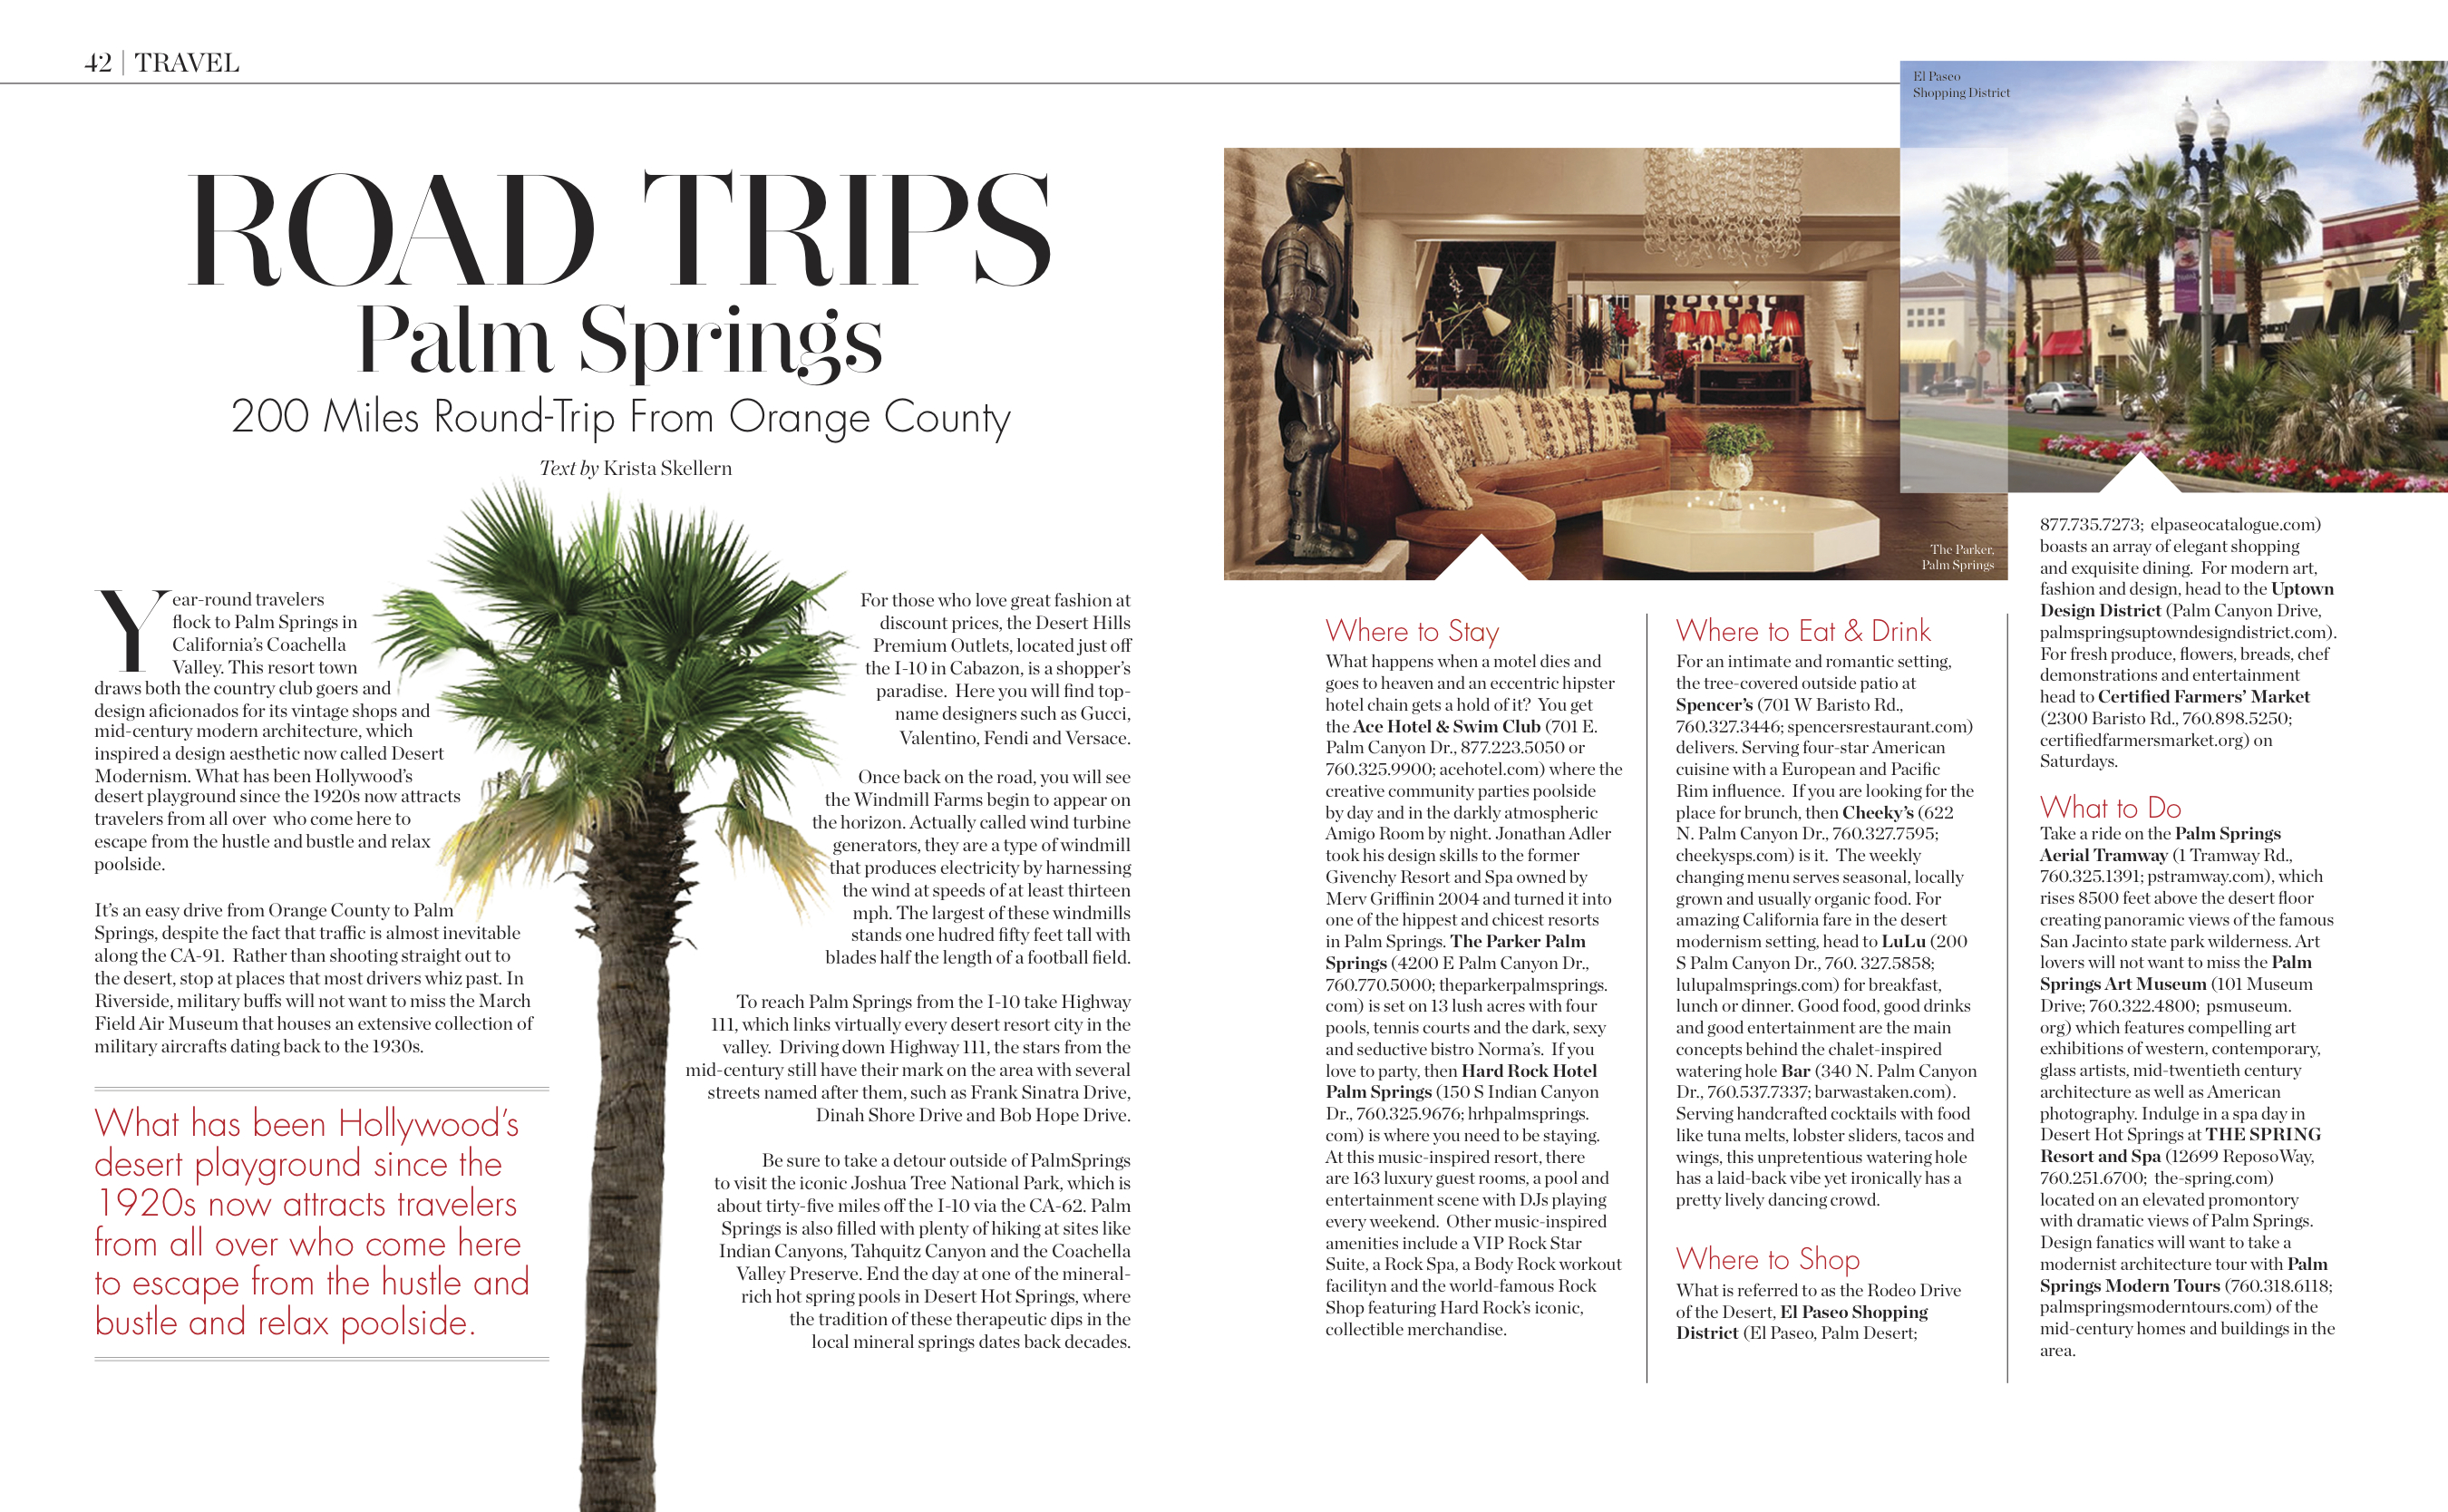 Magazine Editorial: Road Trip to Palm Springs